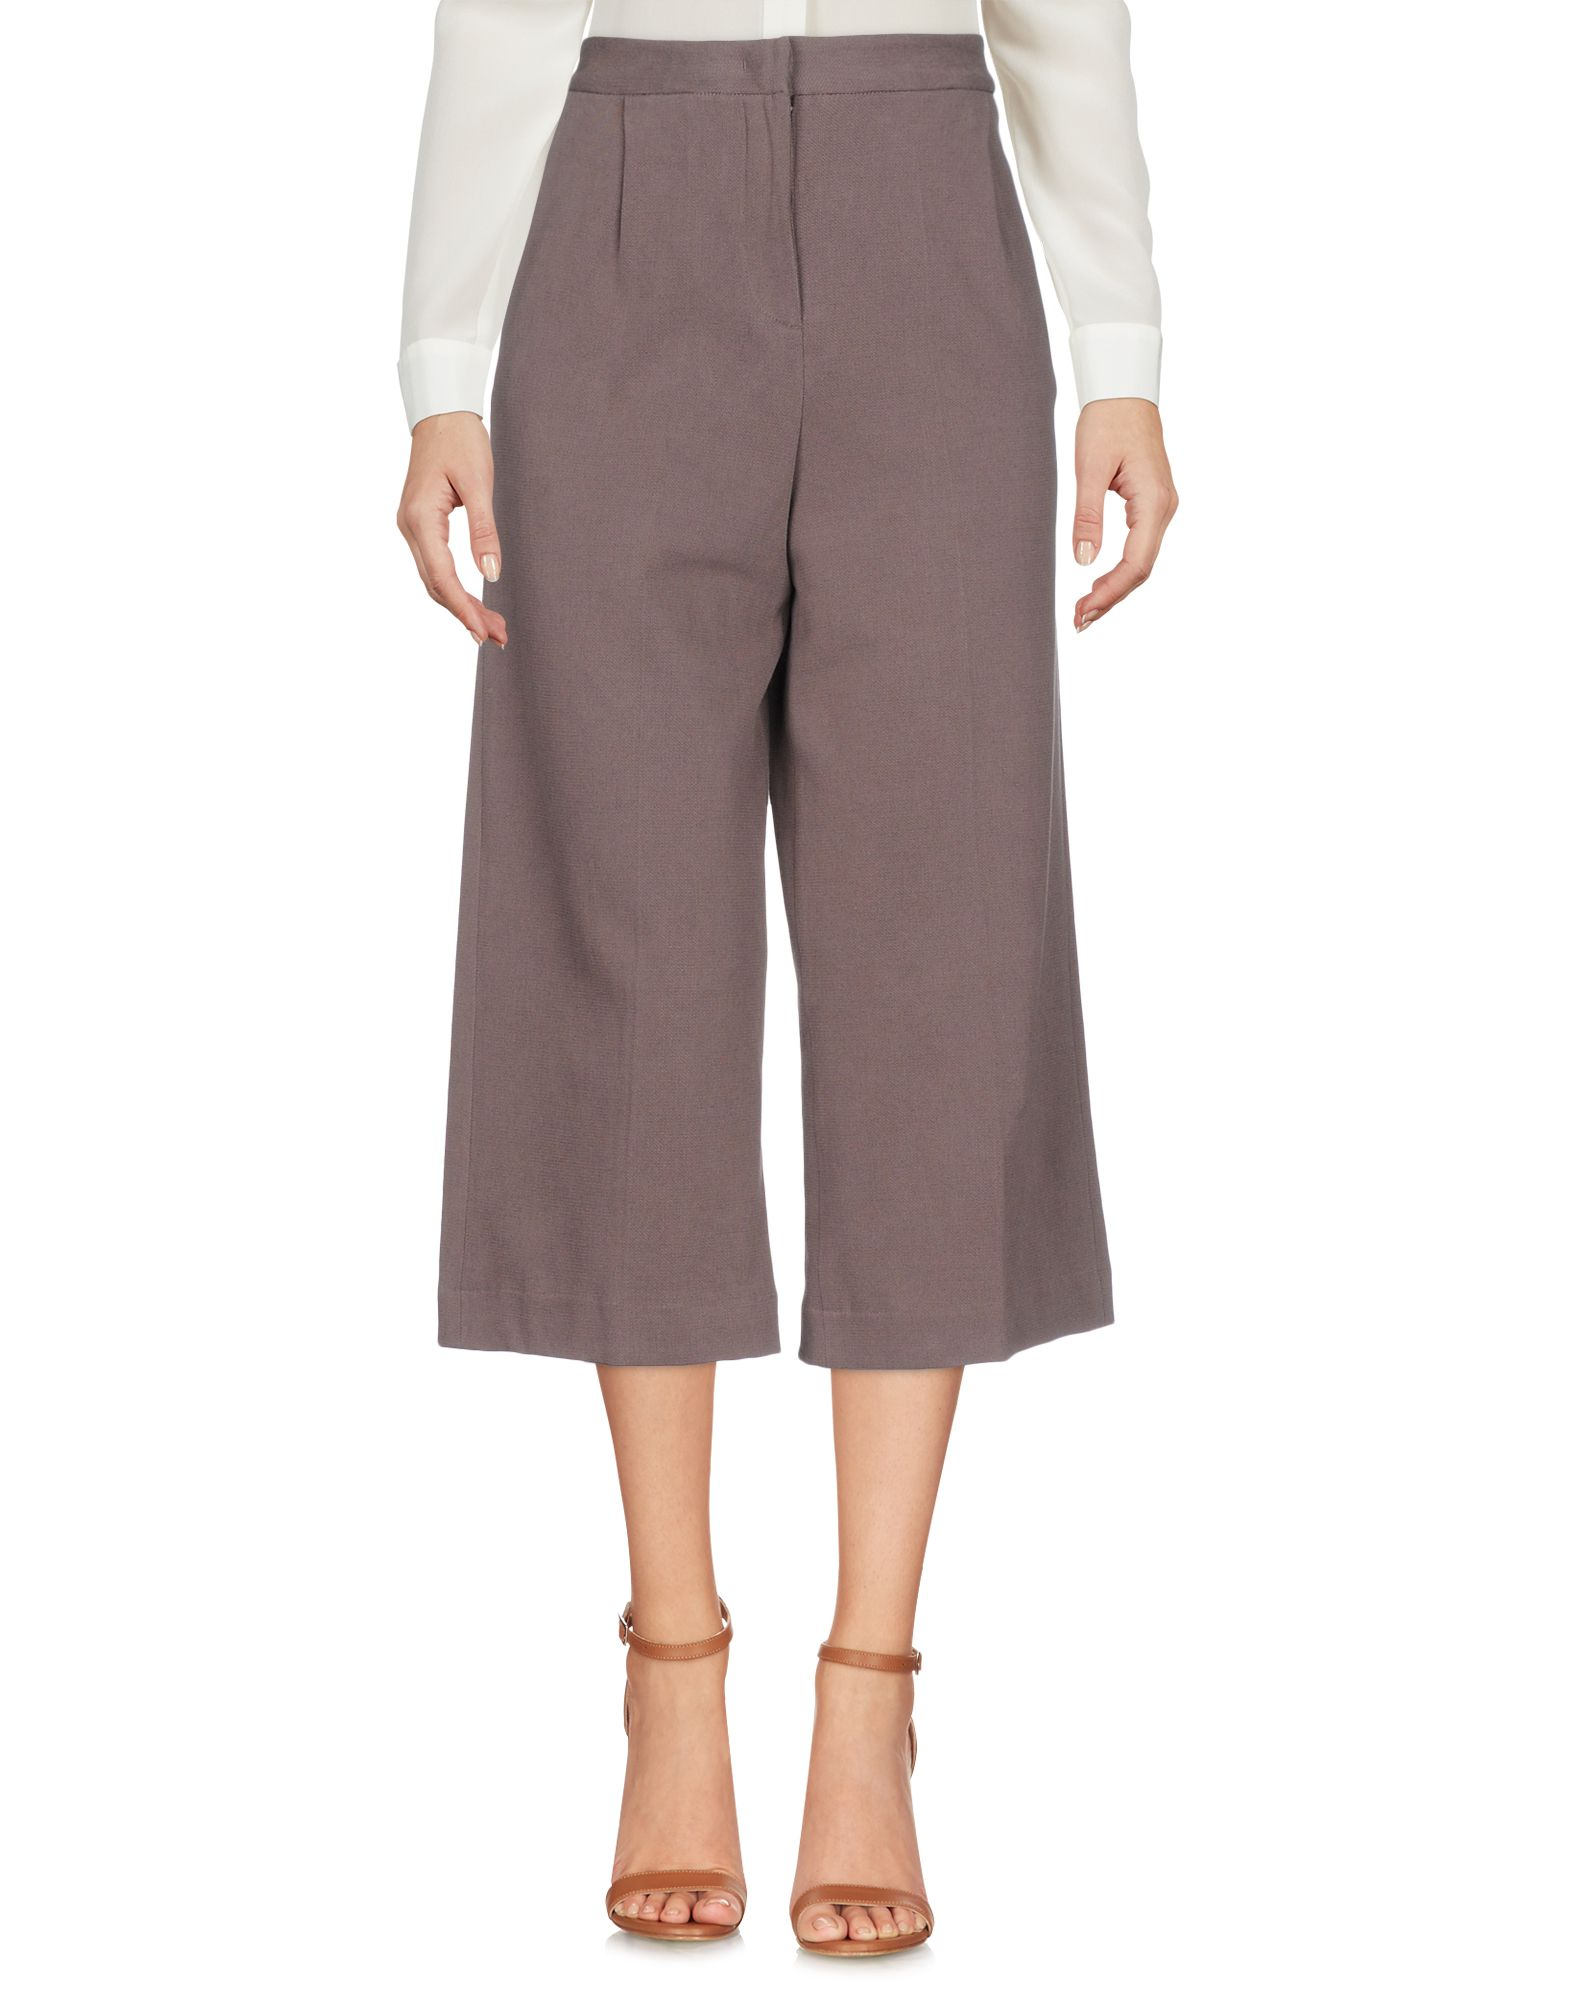 MANILA GRACE Cropped Pants & Culottes in Light Brown